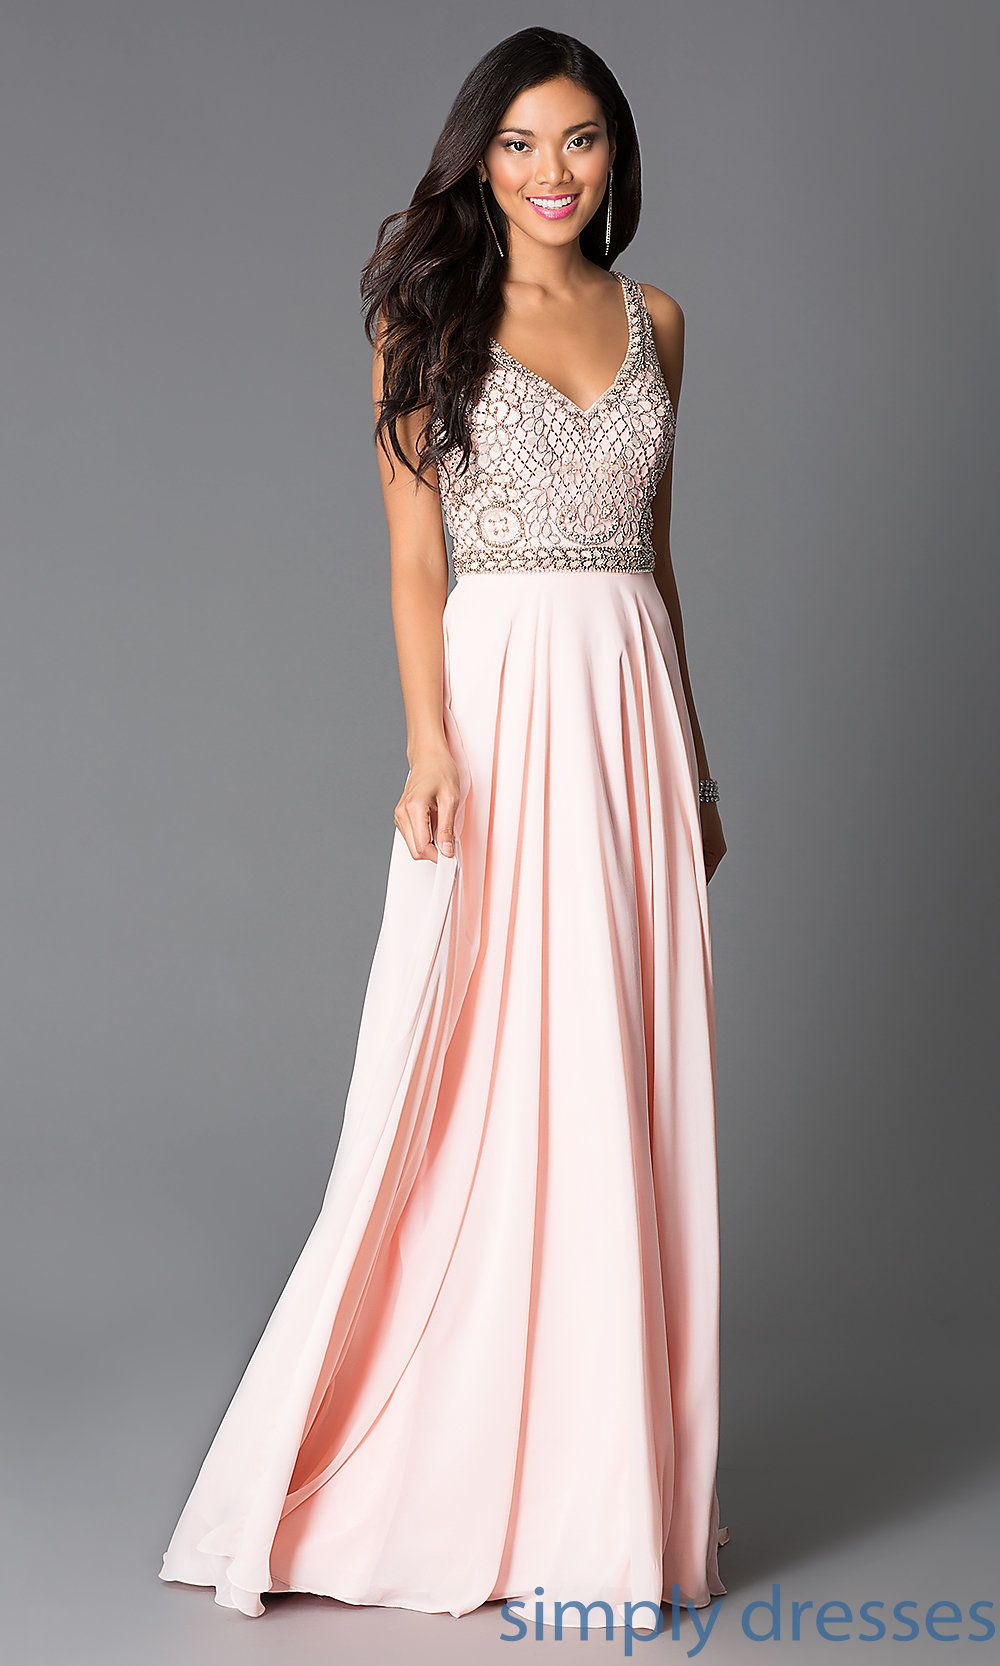 Long Beaded Sleeveless Pink Prom Dress | Dress formal, Dress casual ...